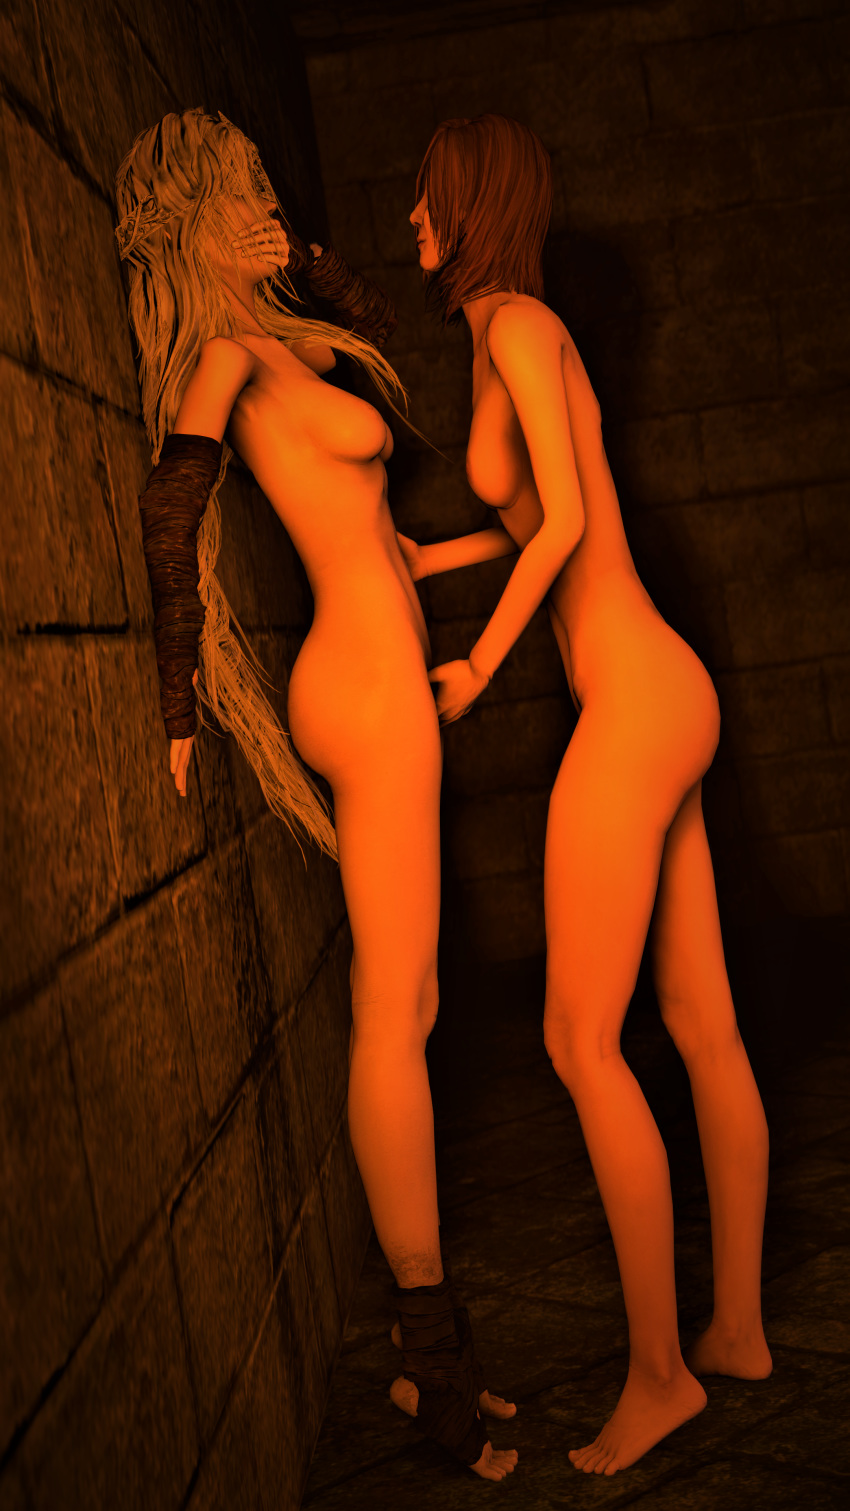 souls dark rat royal authority Hiccup astrid and heather fanfiction lemon